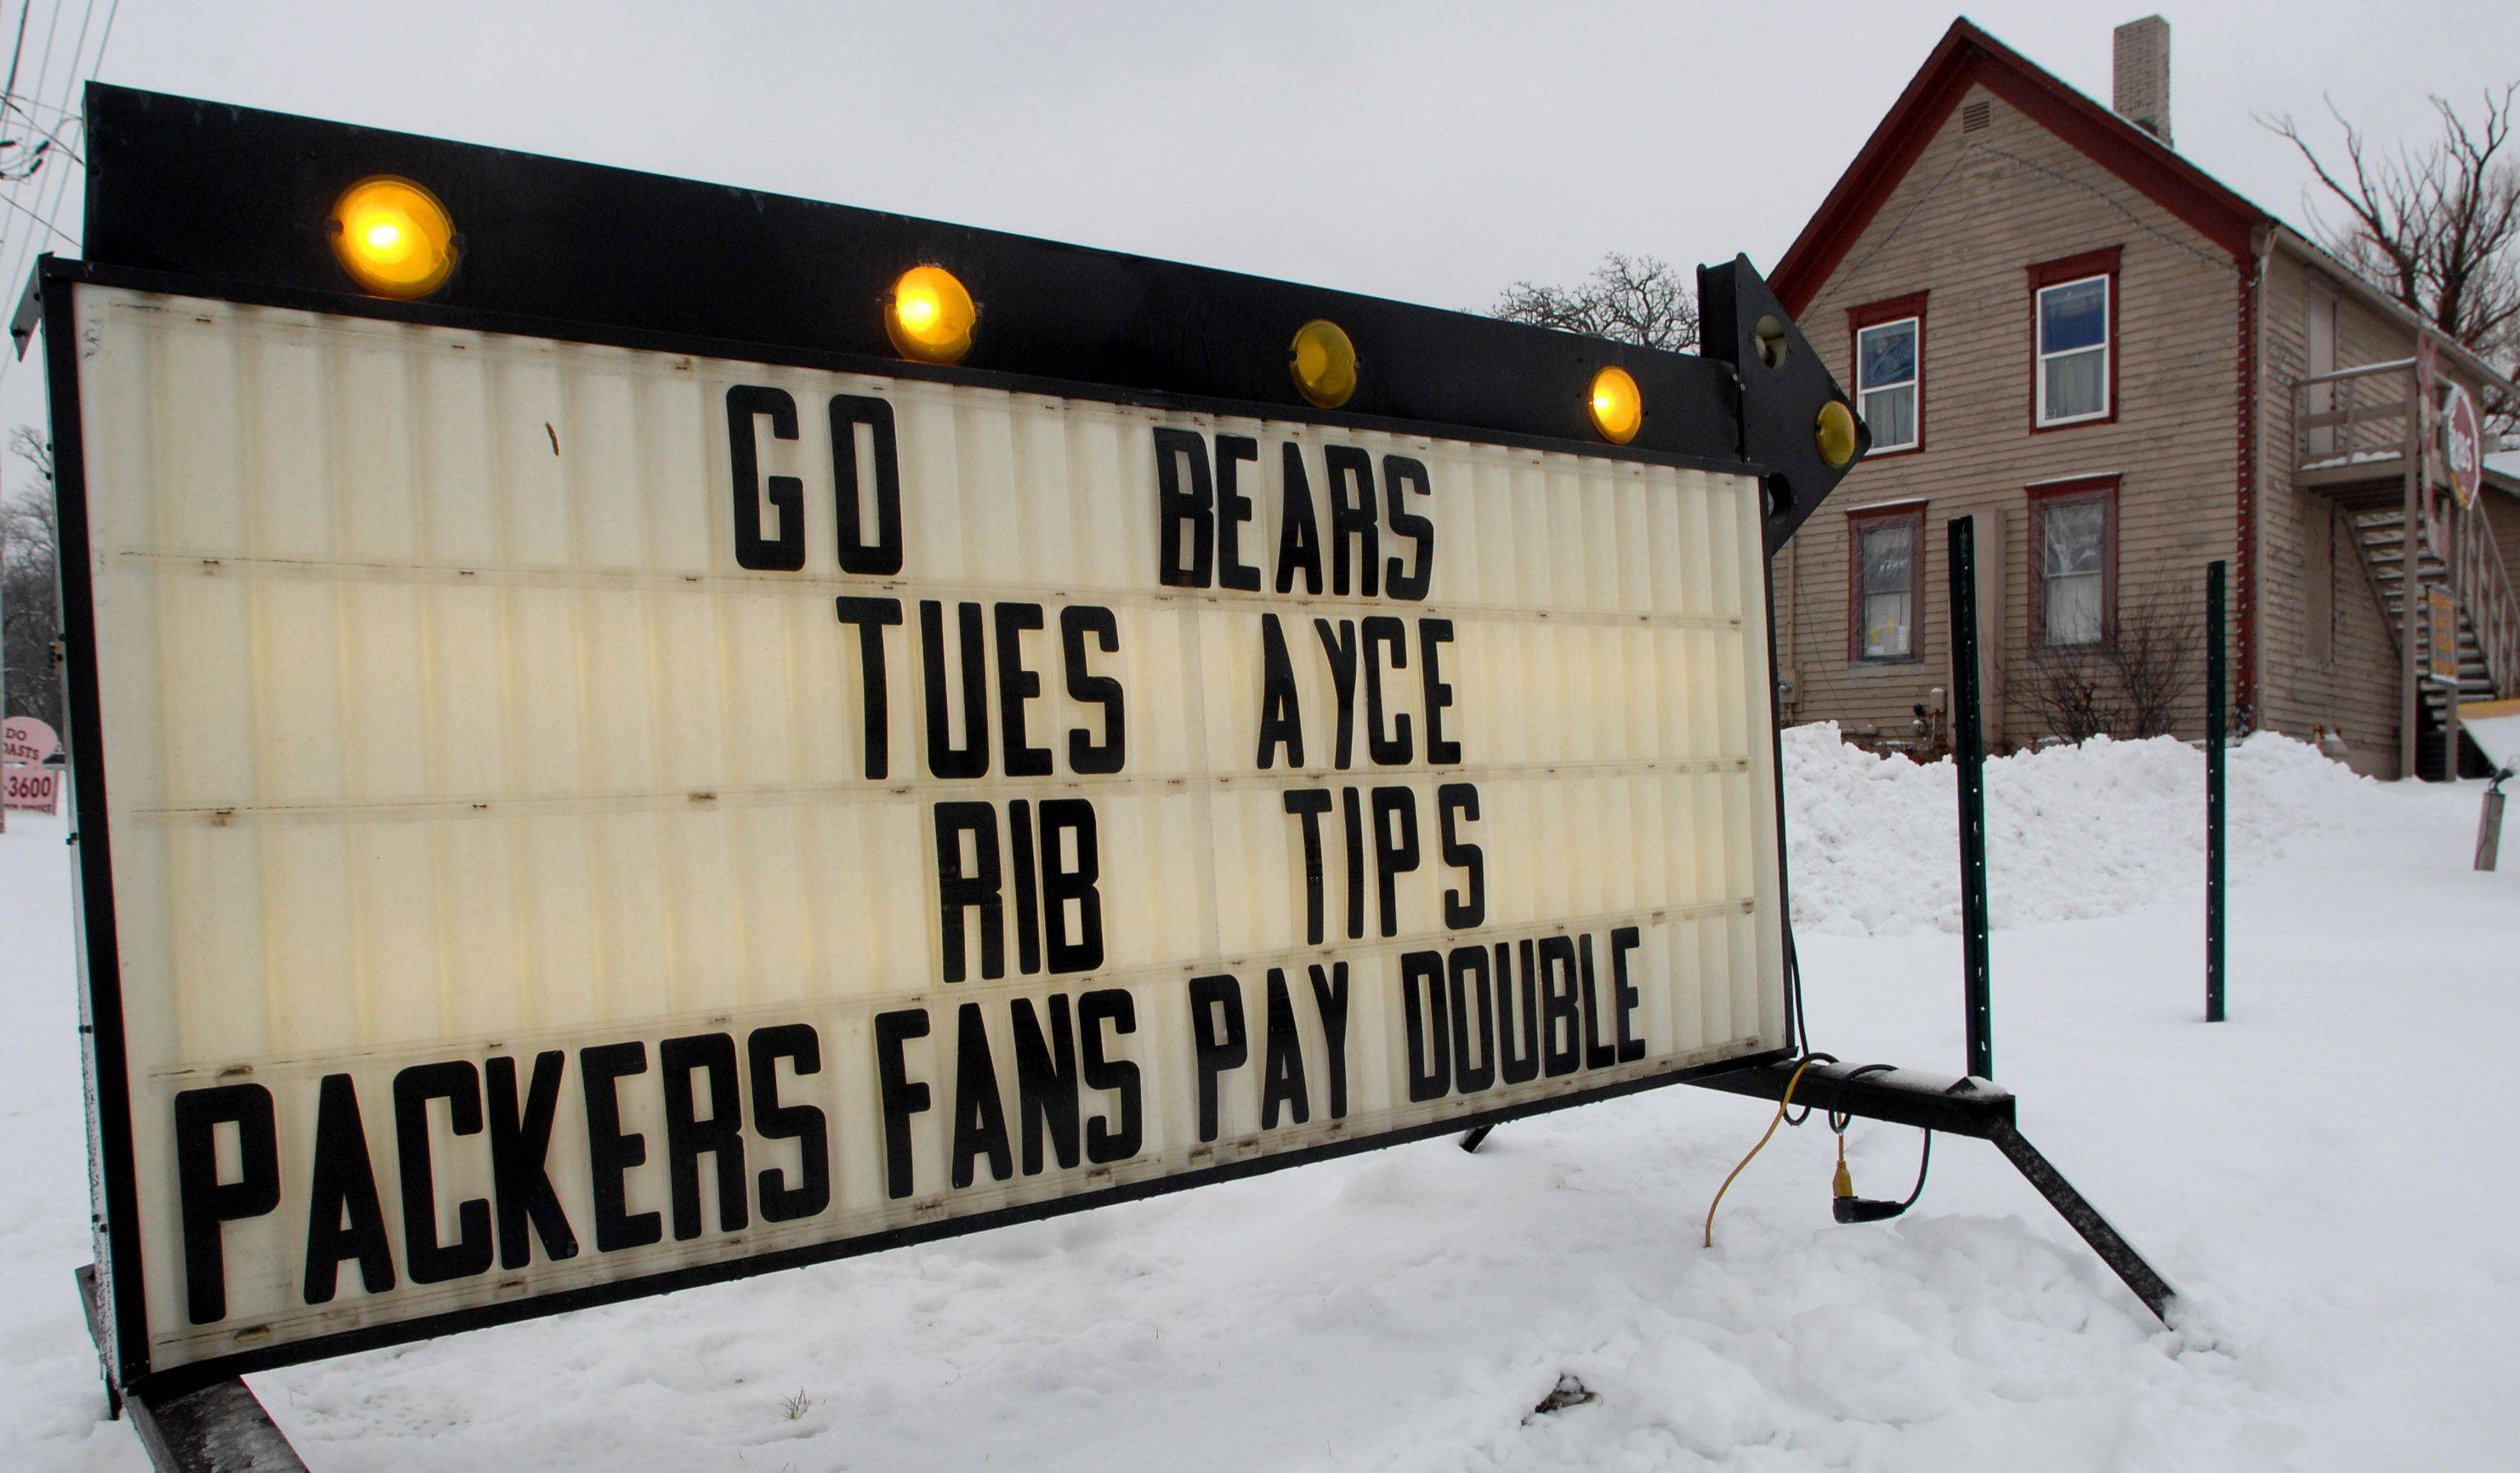 Packers fans pay double?